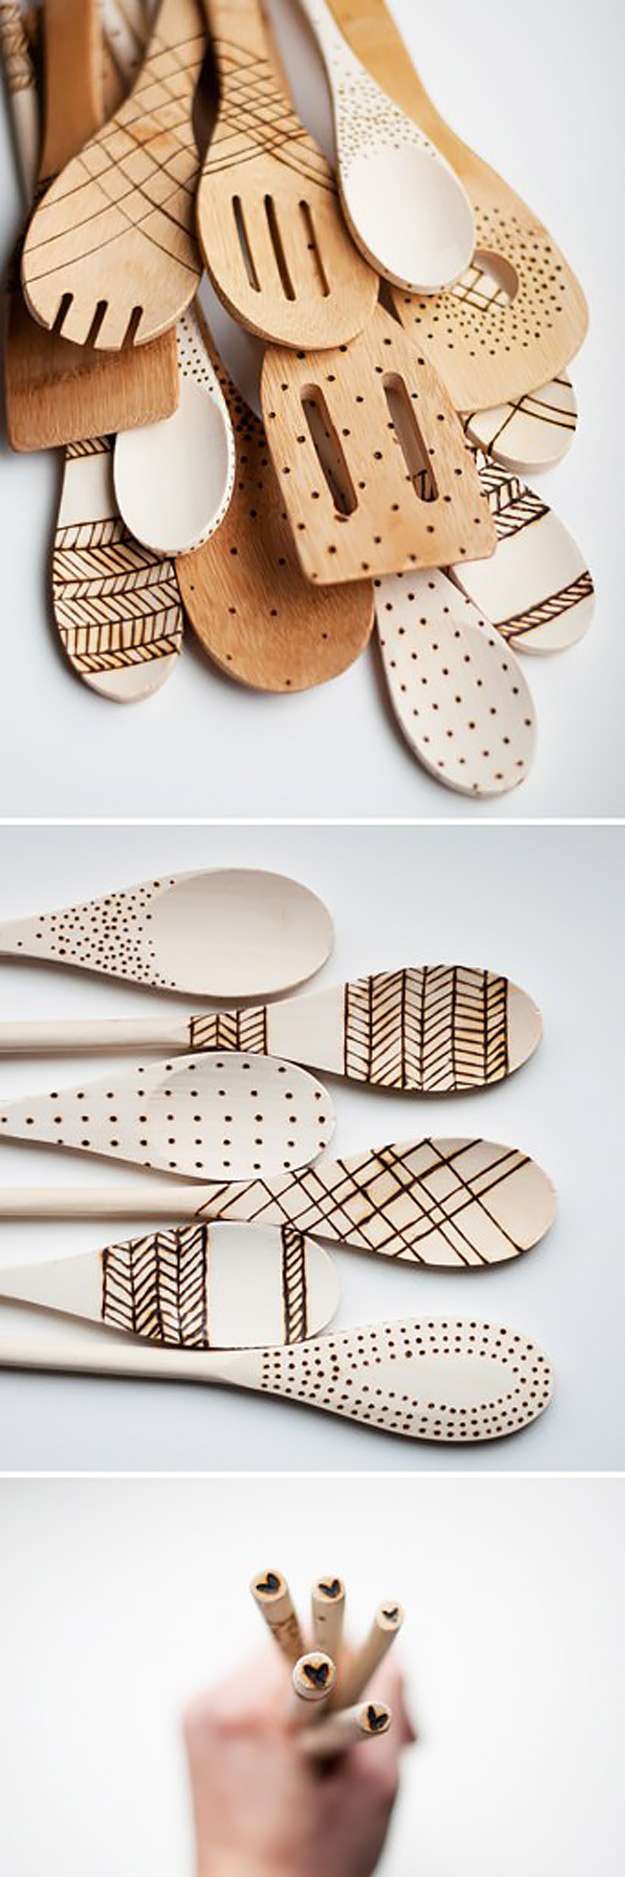 Expensive Looking DIY Wedding Gift Ideas - DIY Etched Wooden Spoons - Easy and Unique Homemade Gift Ideas for Bride and Groom - Cheap Presents You Can Make for the Couple- for the Home, From The Kids, Personalized Ideas for Parents and Bridesmaids #diywedding #weddinggifts #diygiftsLooking DIY Wedding Gift Ideas - DIY Etched Wooden Spoons - Easy and Unique Homemade Gift Ideas for Bride and Groom - Cheap Presents You Can Make for the Couple- for the Home, From The Kids, Personalized Ideas for Parents and Bridesmaids  